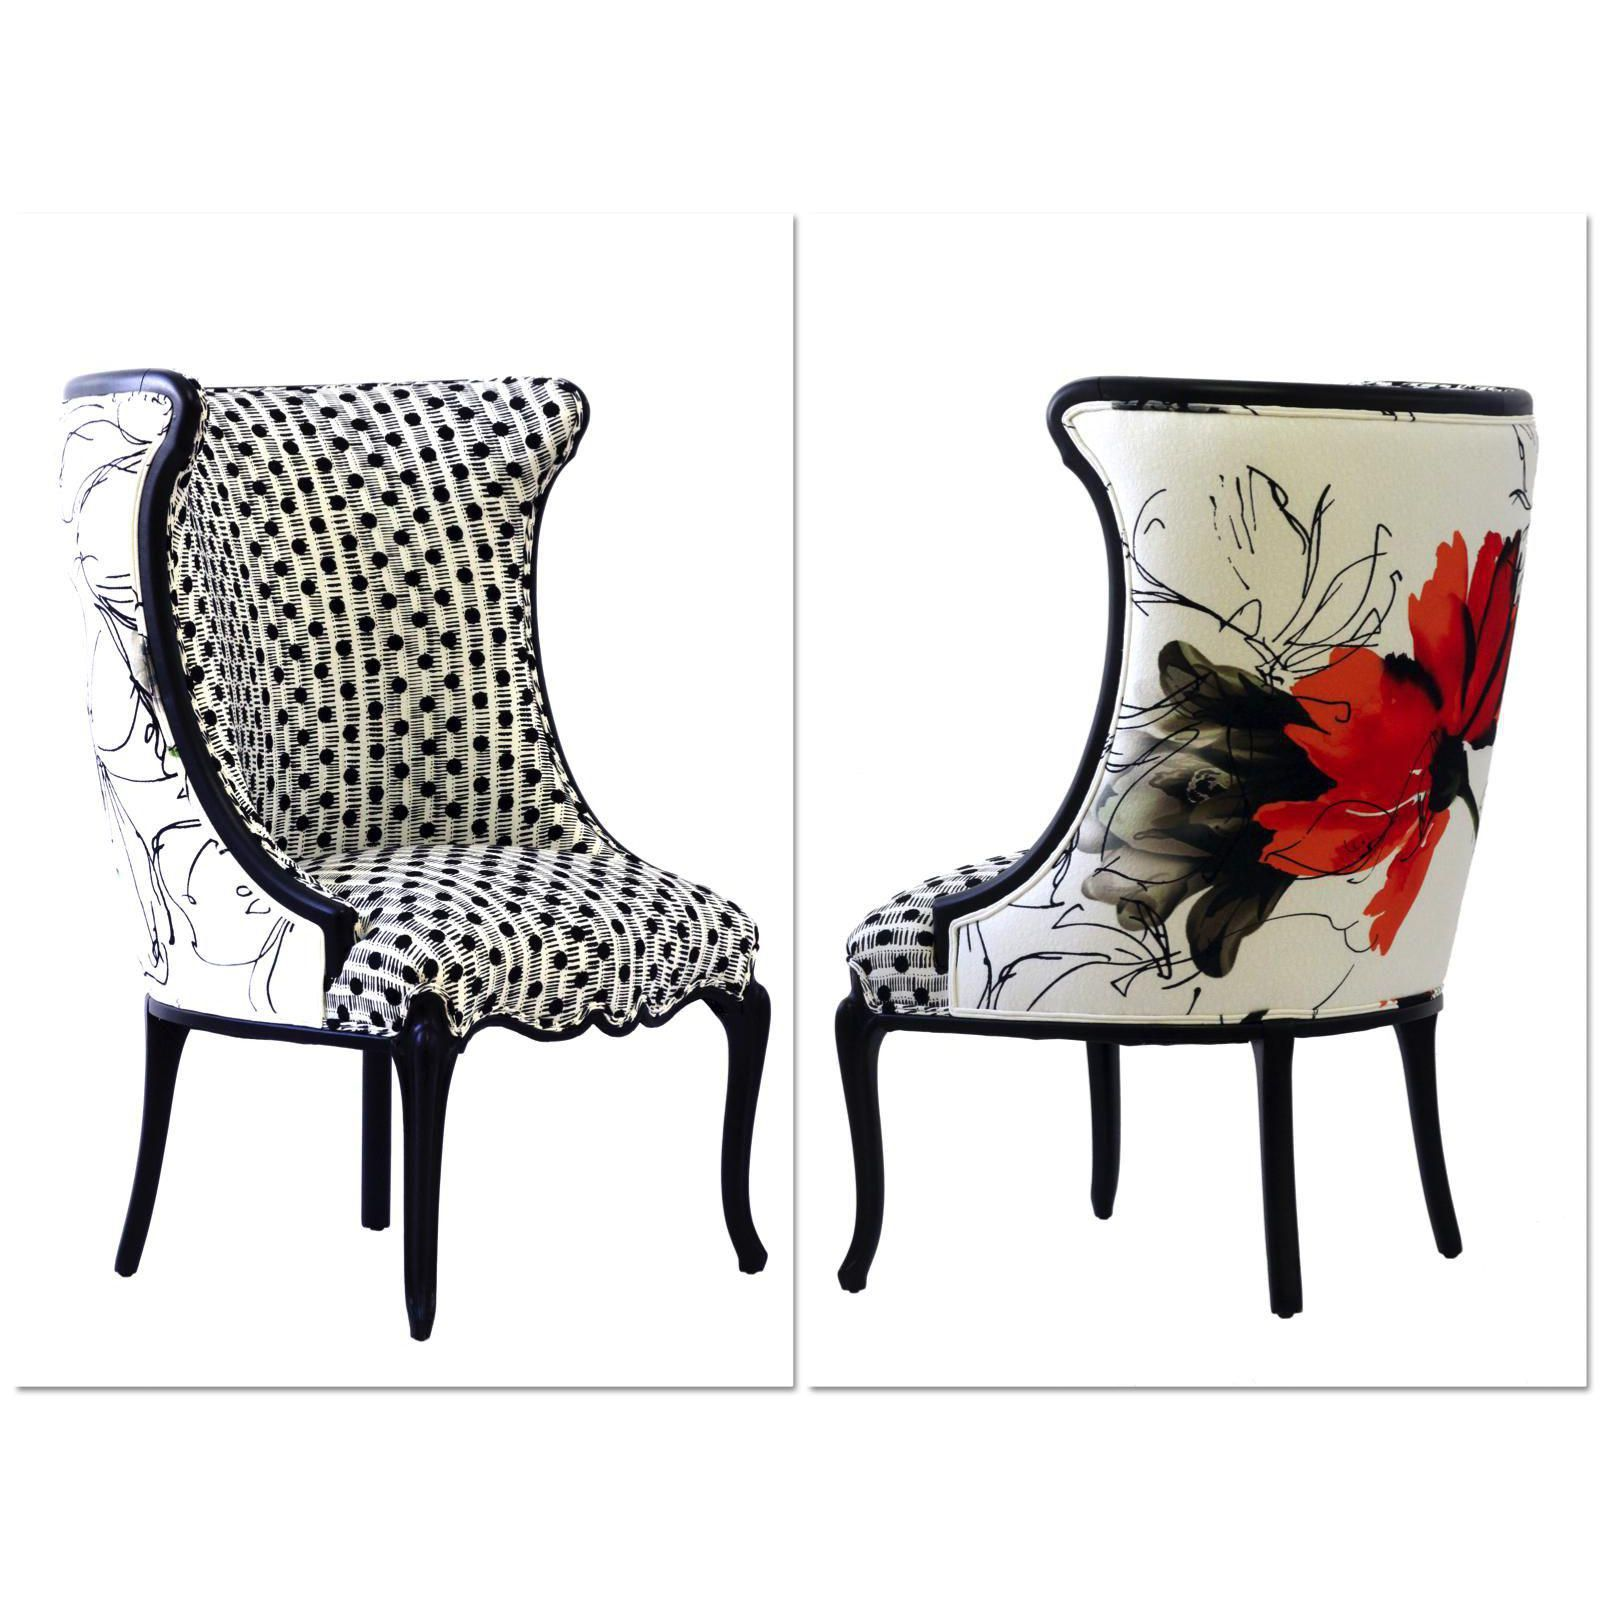 """Black and White Upholstered """"Flora"""" Chair Image 2 of 6"""